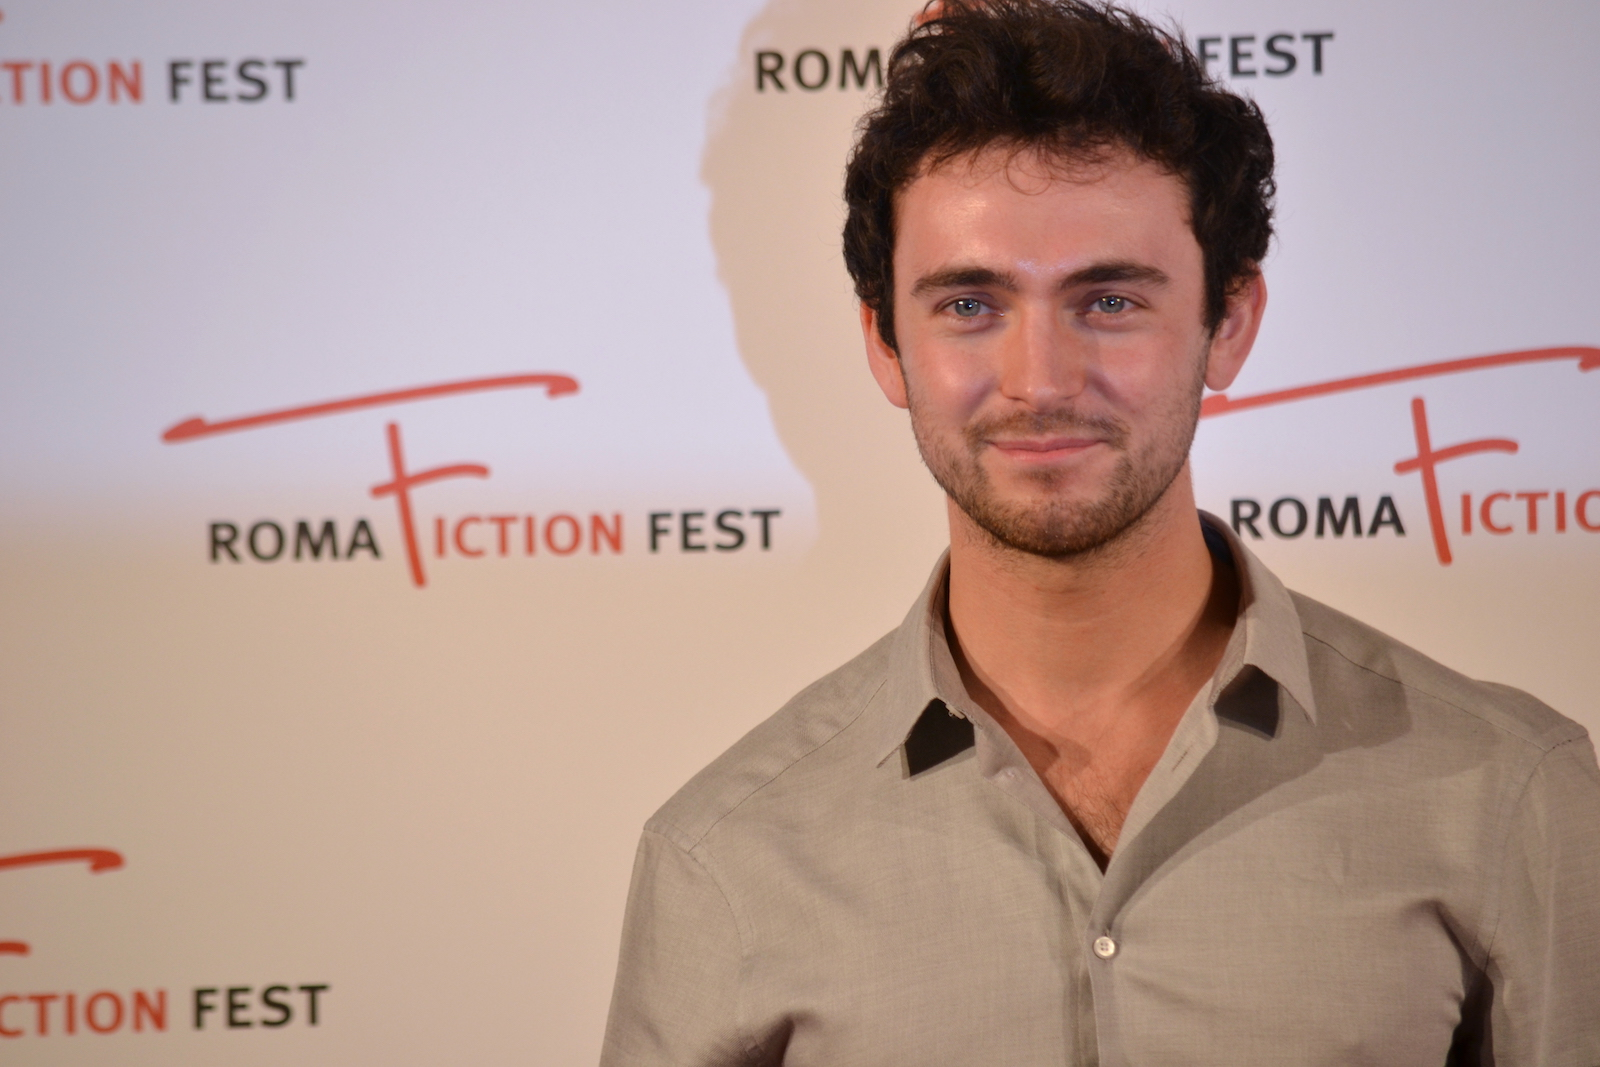 Roma Fiction Fest 2015: George Blagden al photocall di Versailles